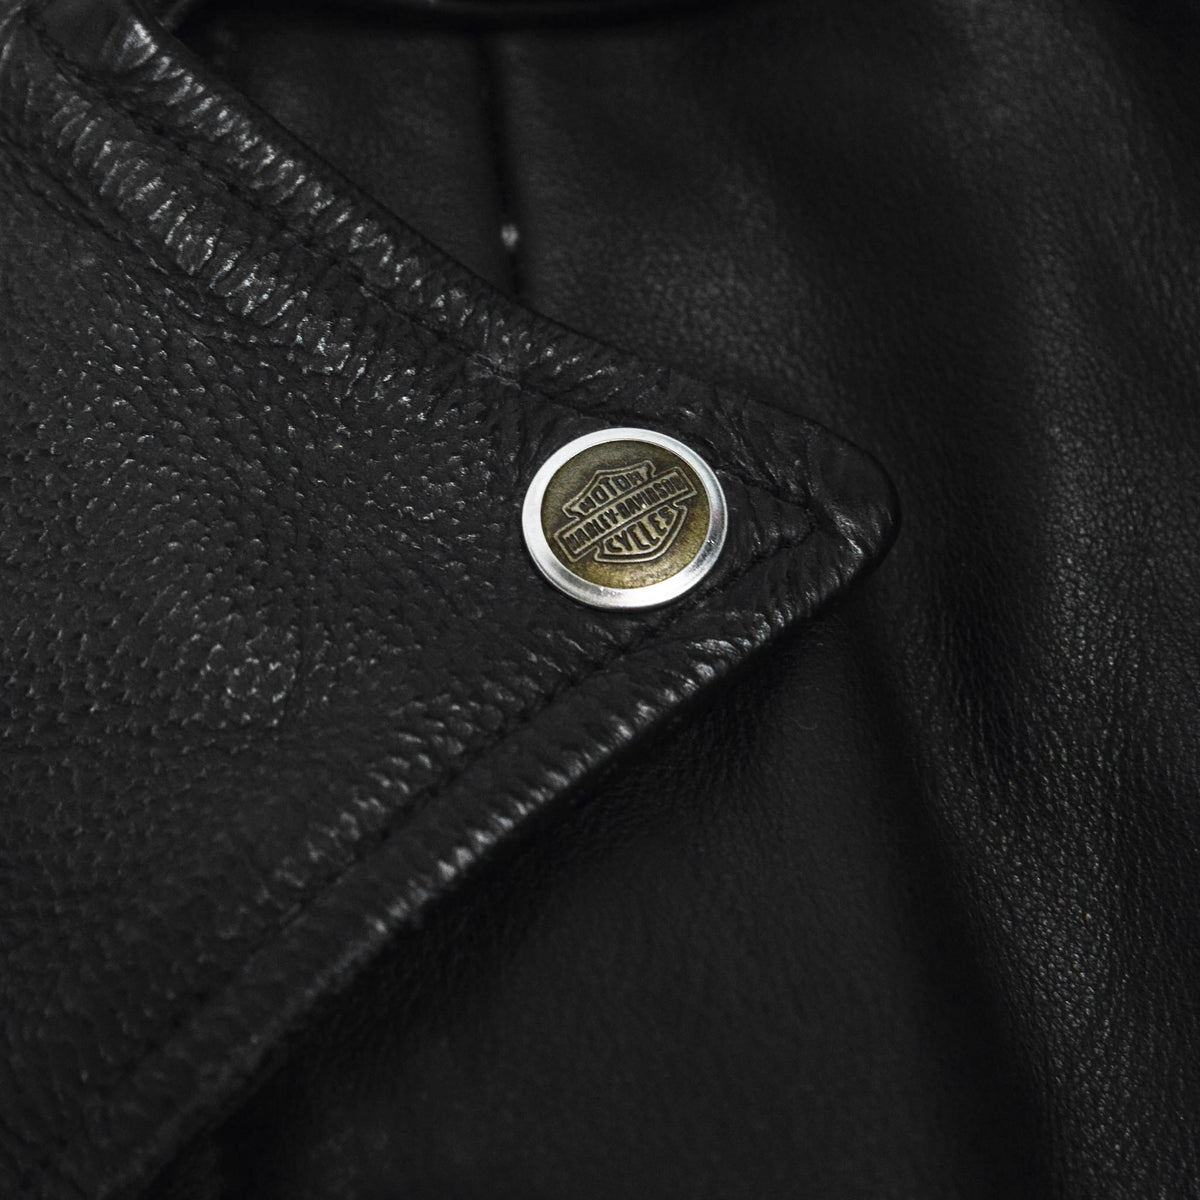 Vintage 90s Harley Davidson Made in USA Black Leather Biker Motorcycle Jacket M collar button